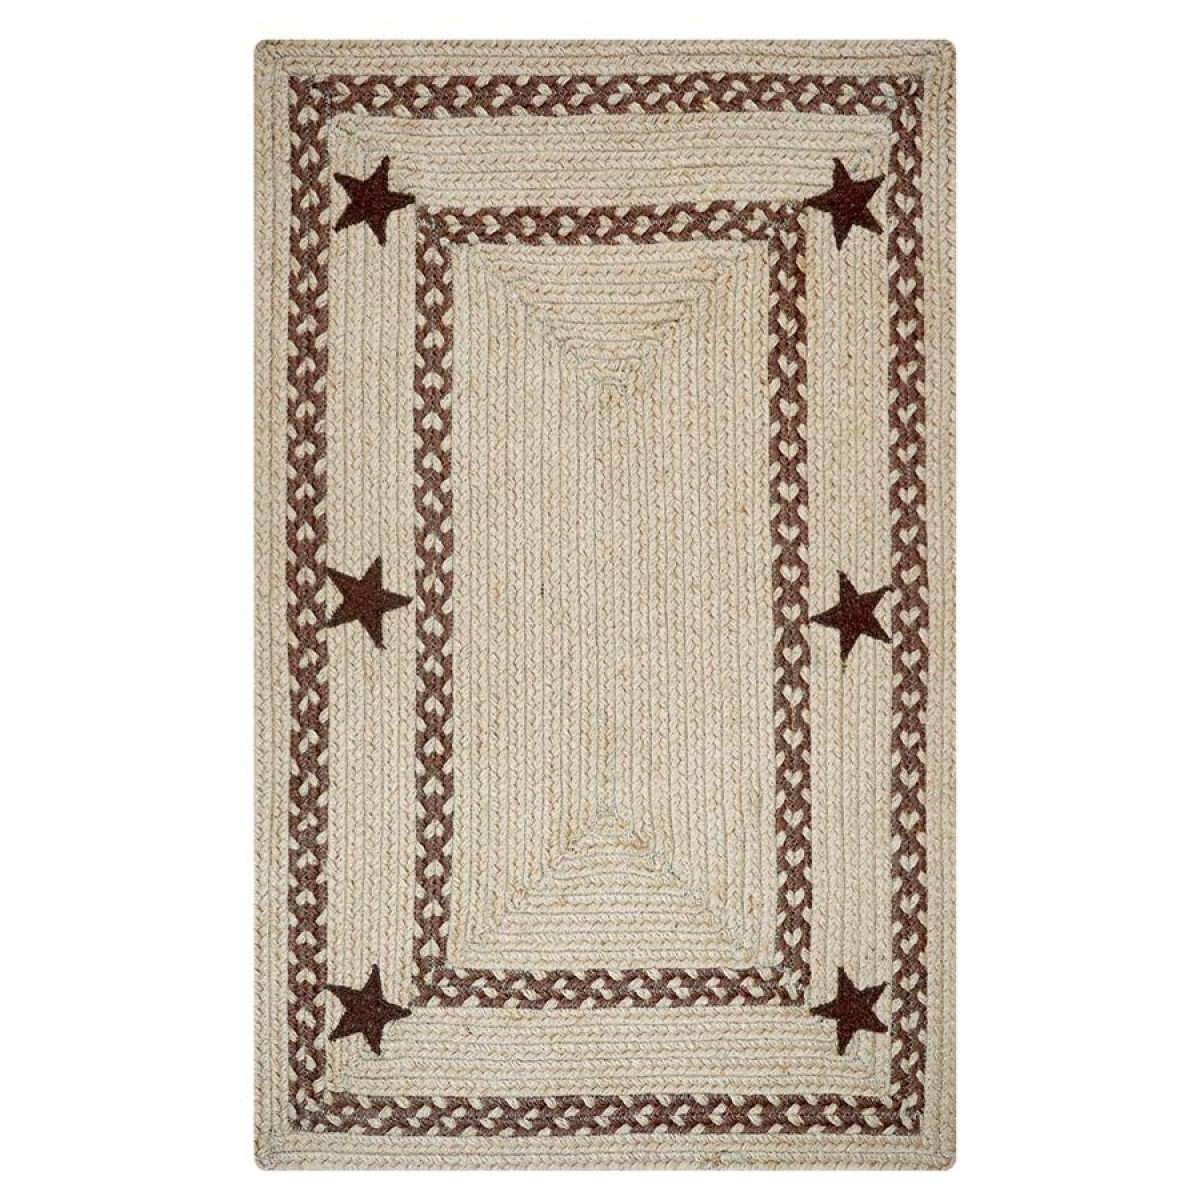 Wholesale Country Primitive Home Decor: Buy Texas Brown Jute Braided Rugs Online